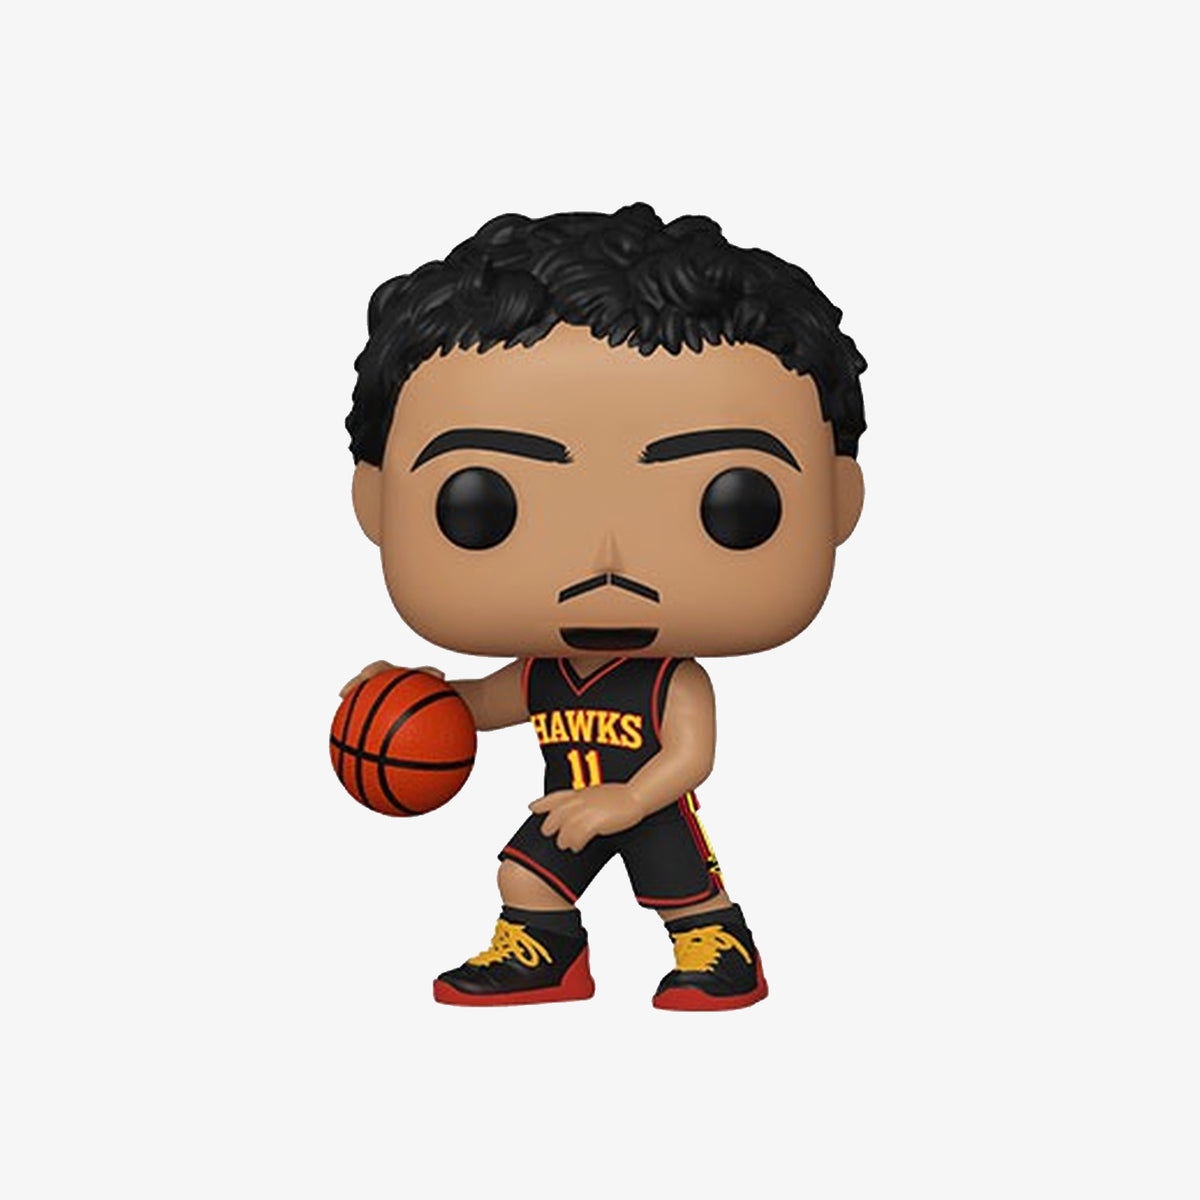 Trae Young Atlanta Hawks NBA Pop Figure - Statement - Black